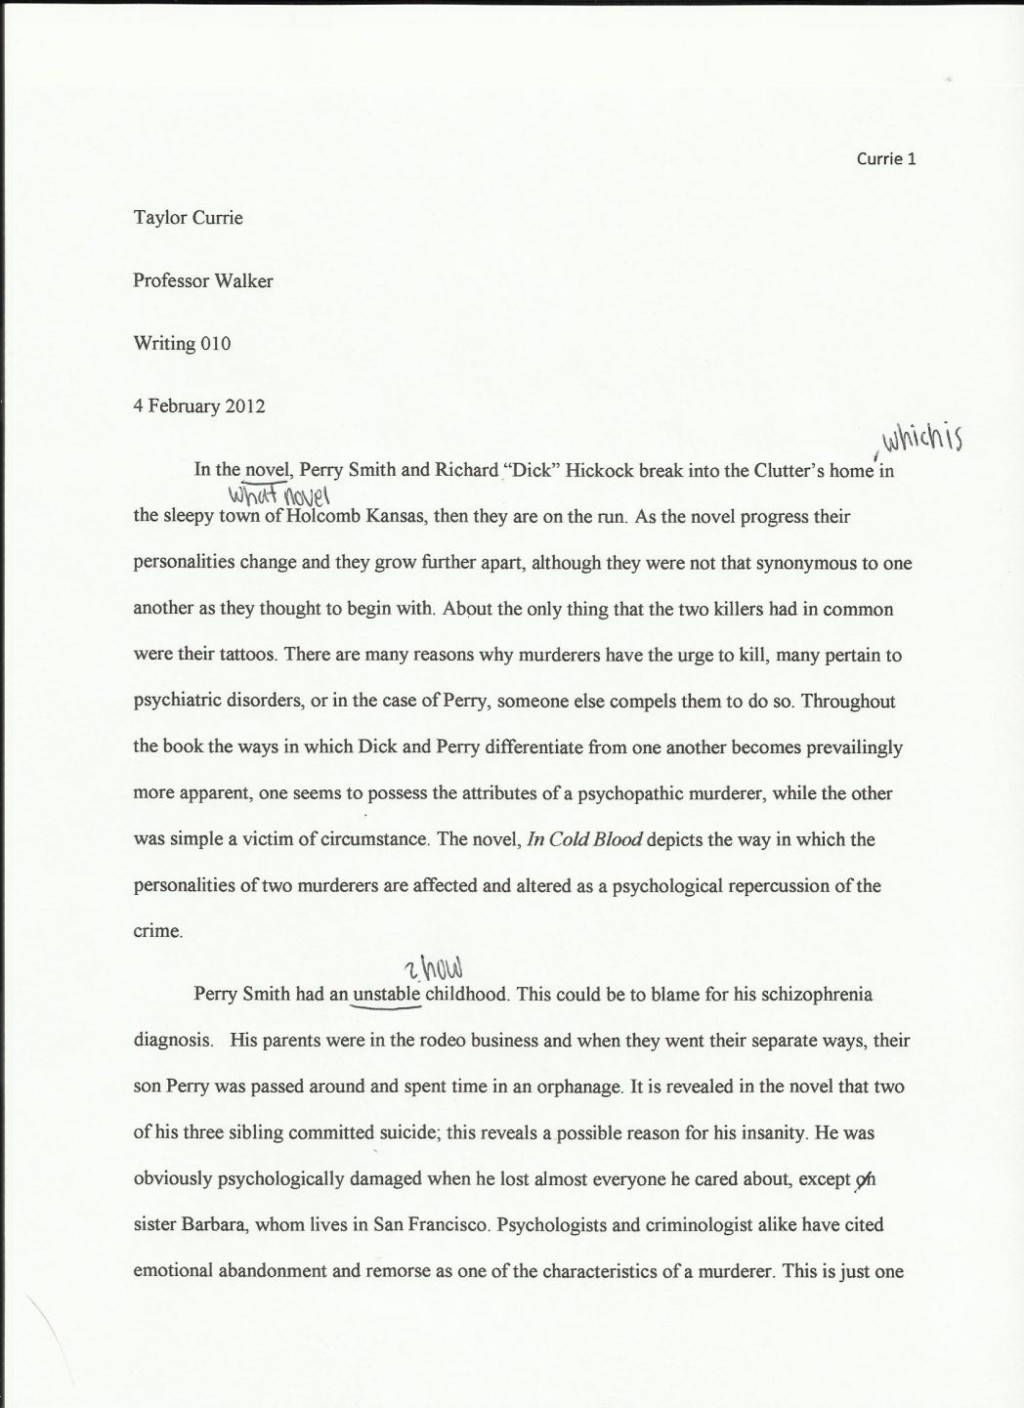 002 Essay On Decision Making In Cold Blood Essays Simple Writing Topics With Answers Draft 1048x1441 Singular And Our Body Hindi Titles Donation Camp School Large